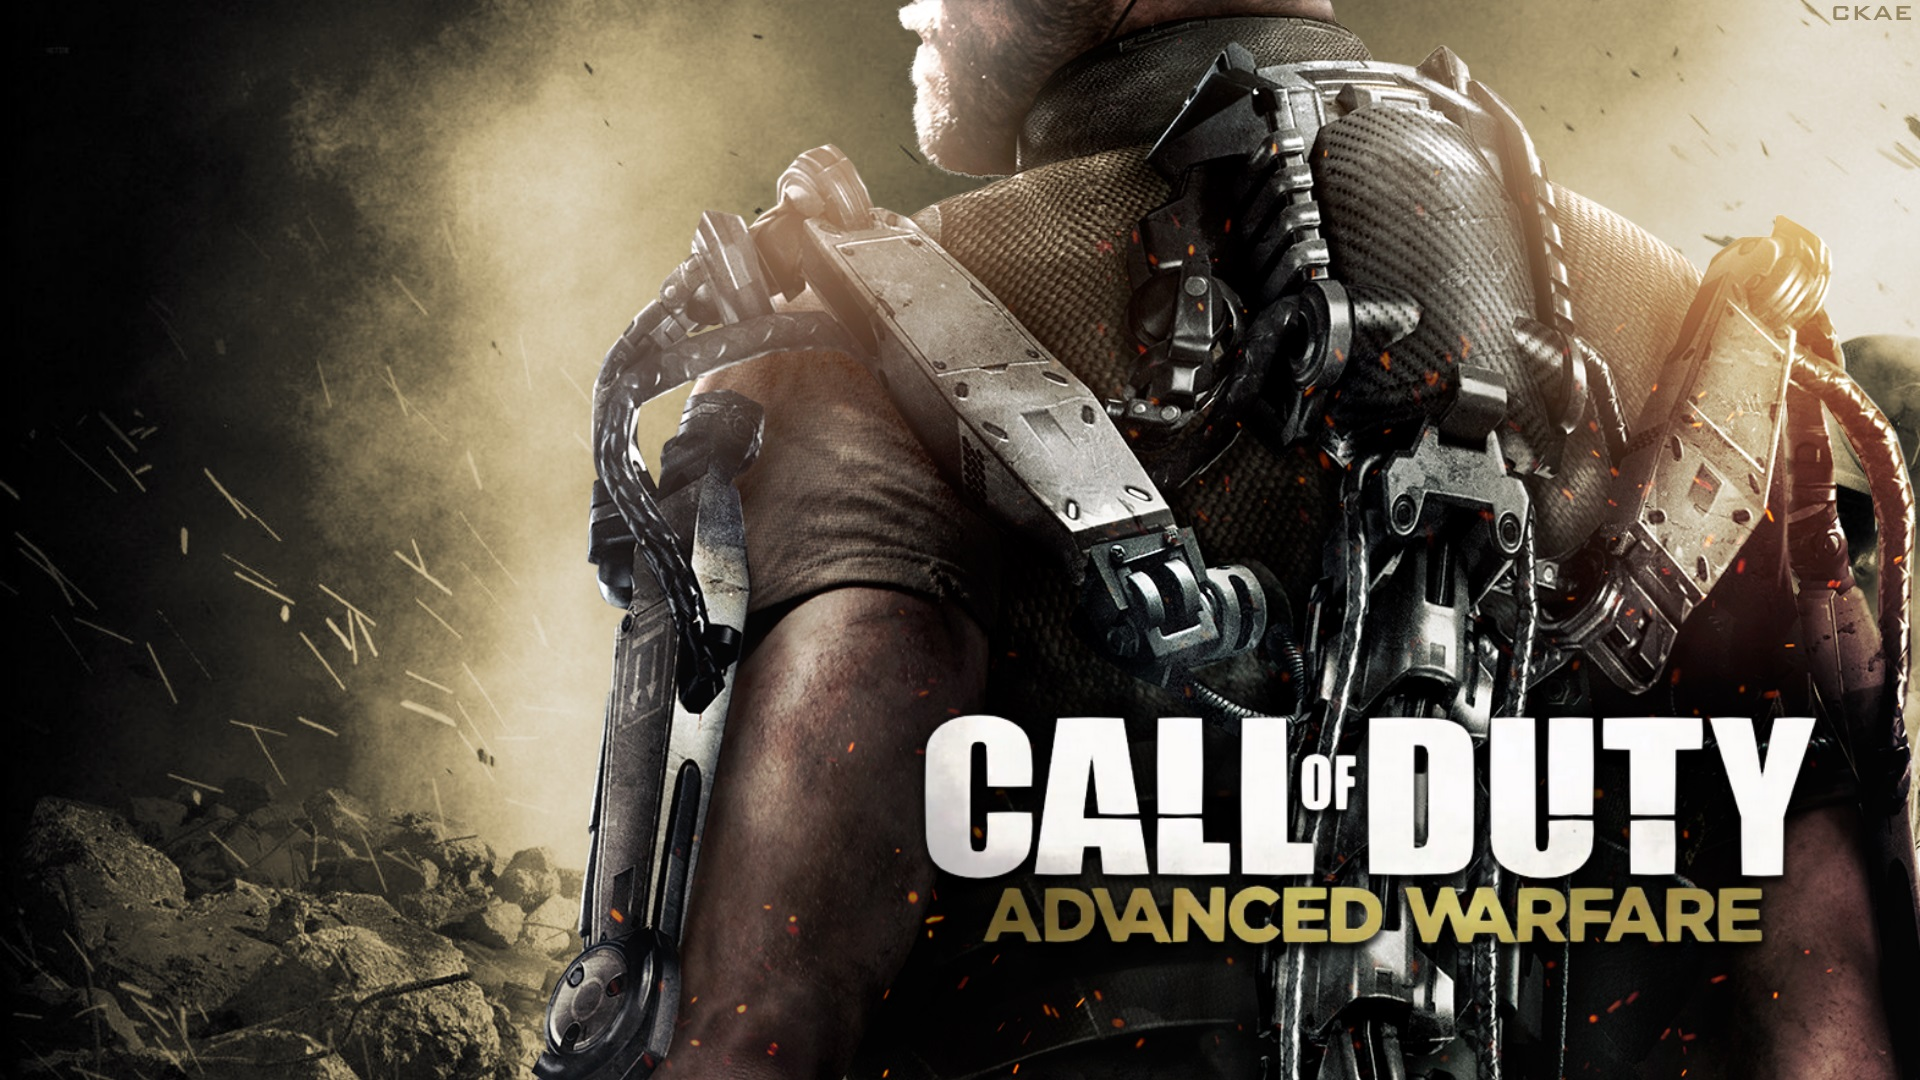 Call of Duty: Advanced Warfare ranked best selling game of 2014